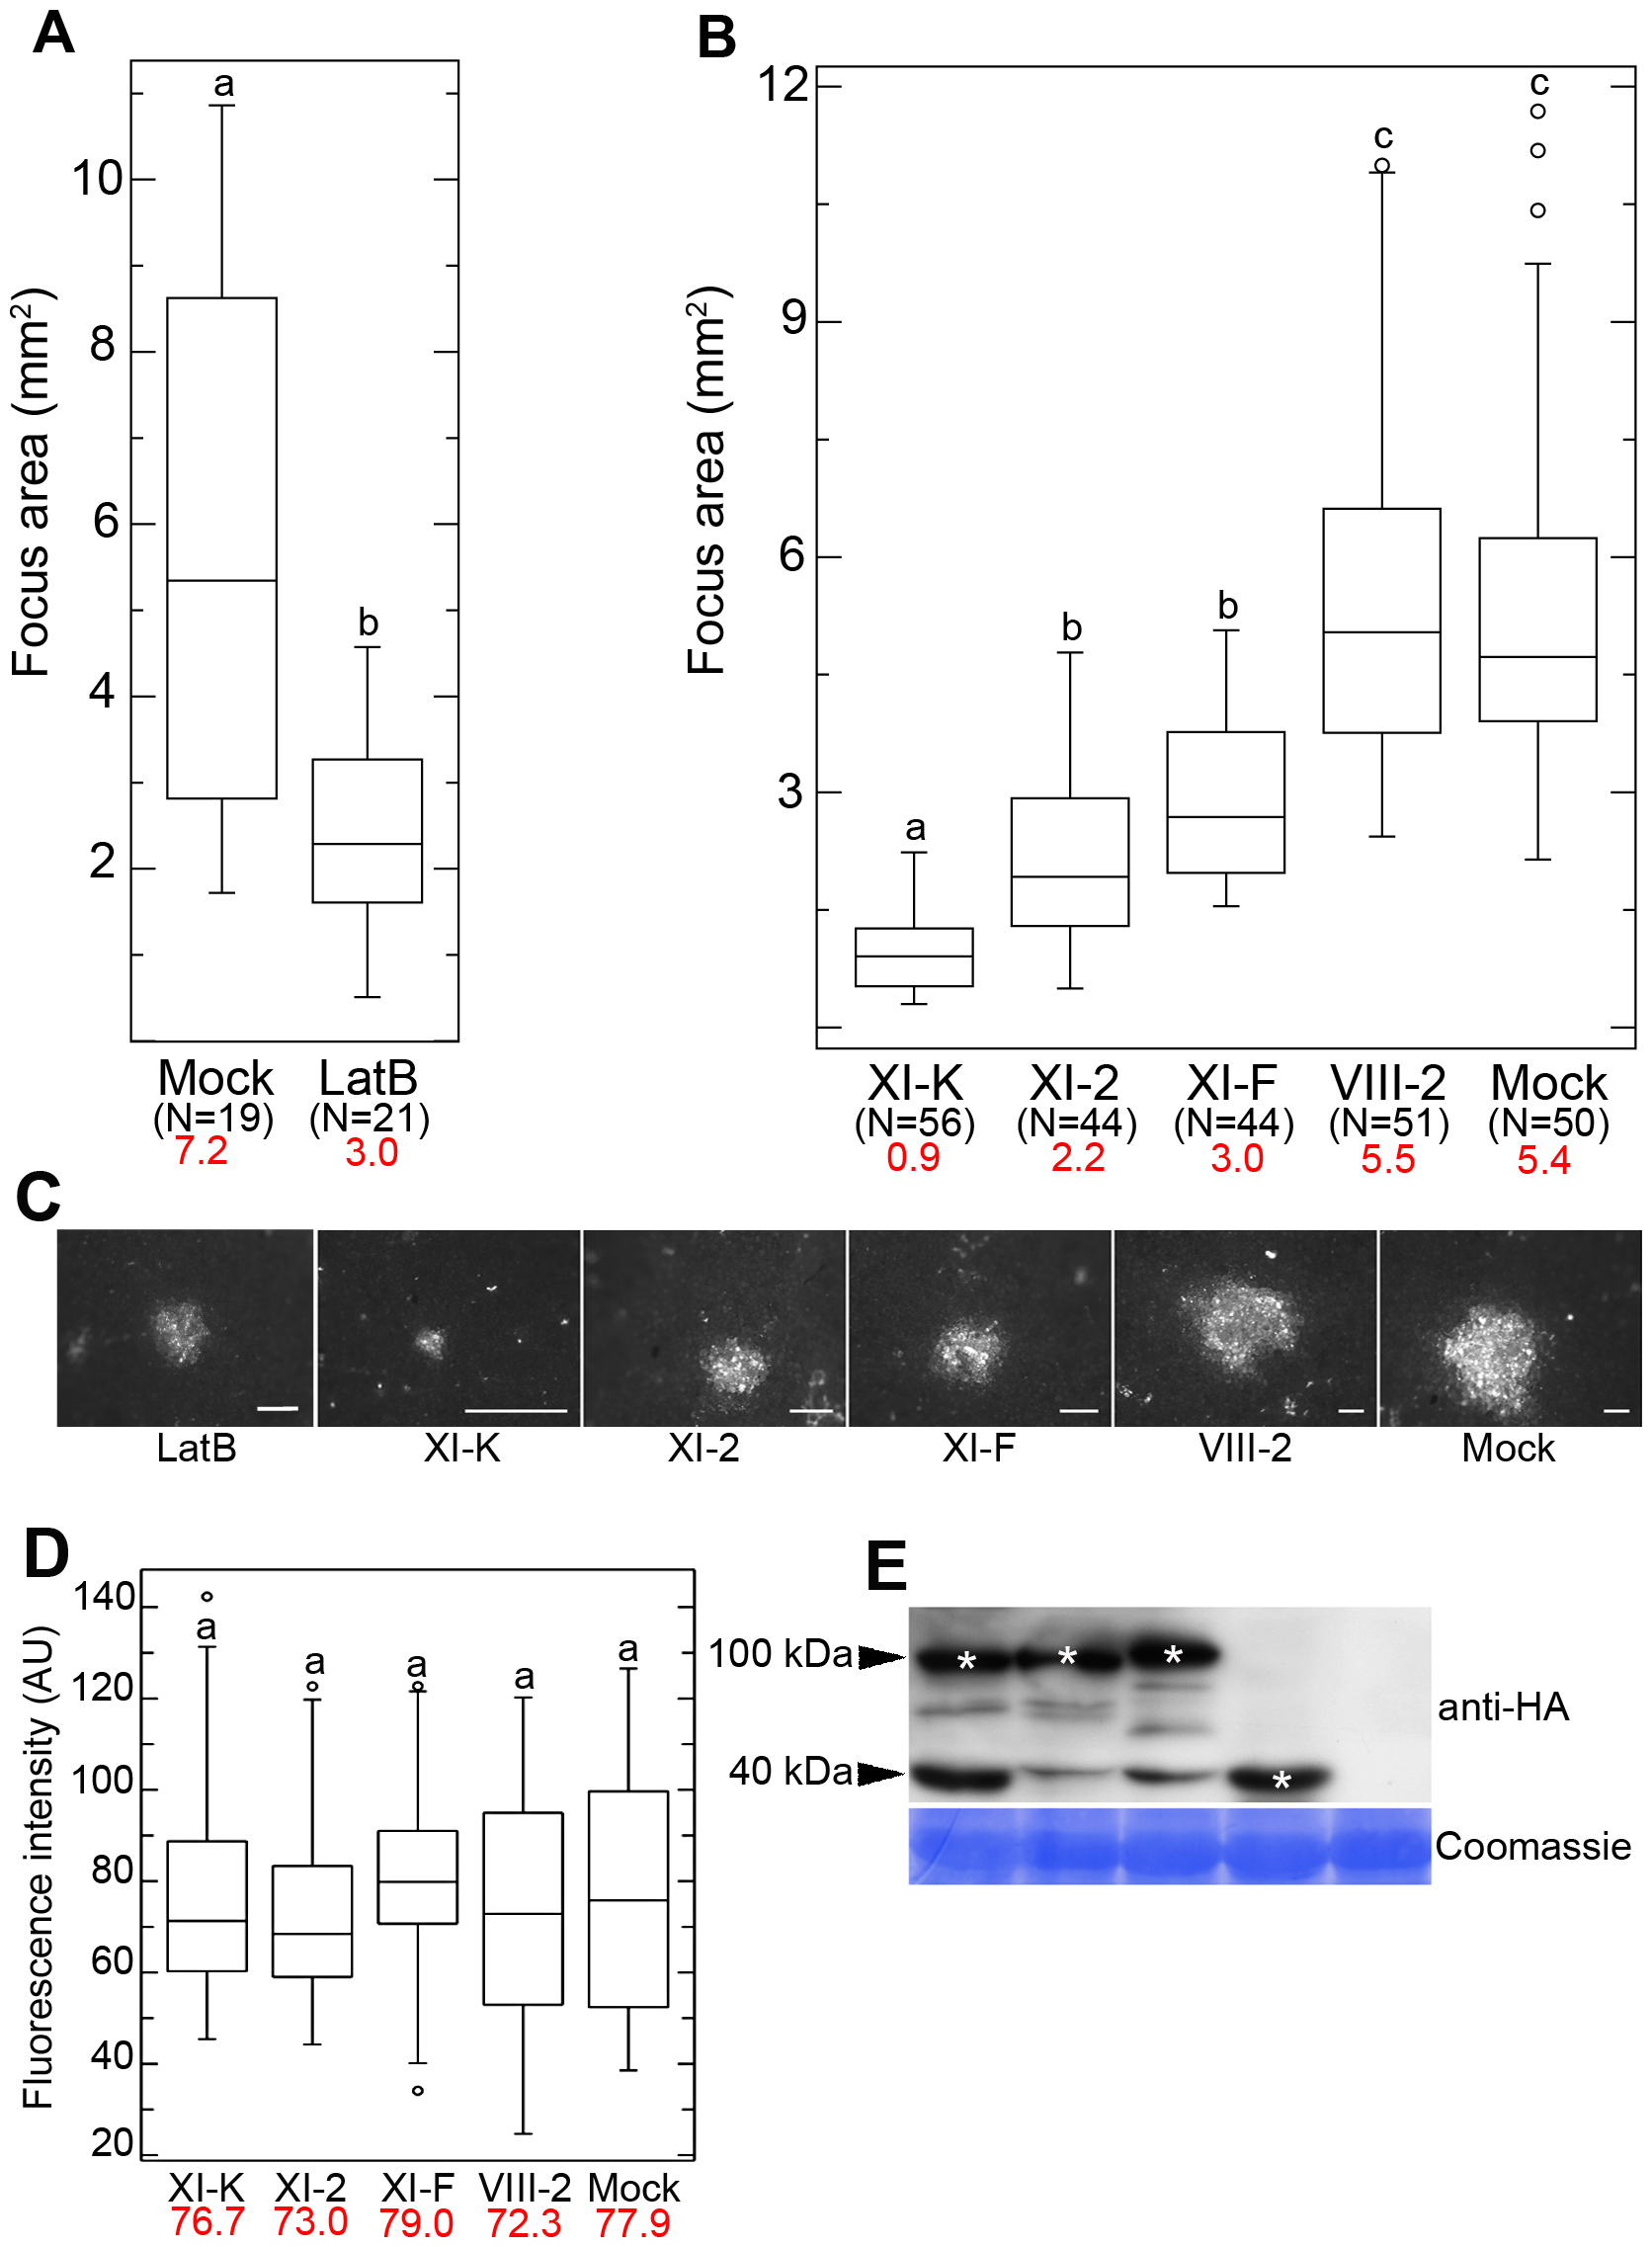 Effects of LatB treatment and myosin tail expression on cell-to-cell movement of GFLV.